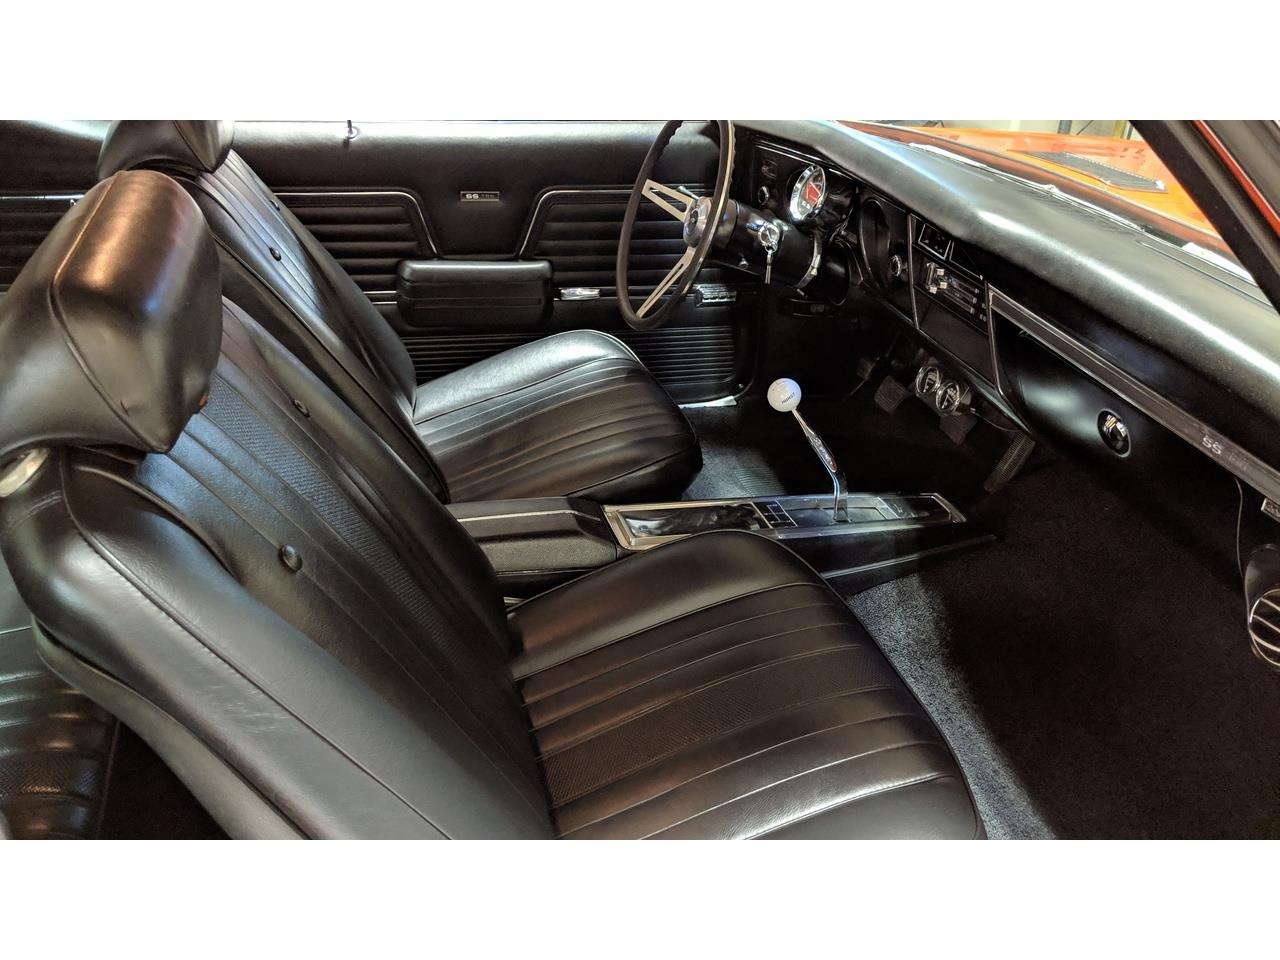 Large Picture of Classic 1969 Chevelle SS - $54,000.00 Offered by a Private Seller - PEBN